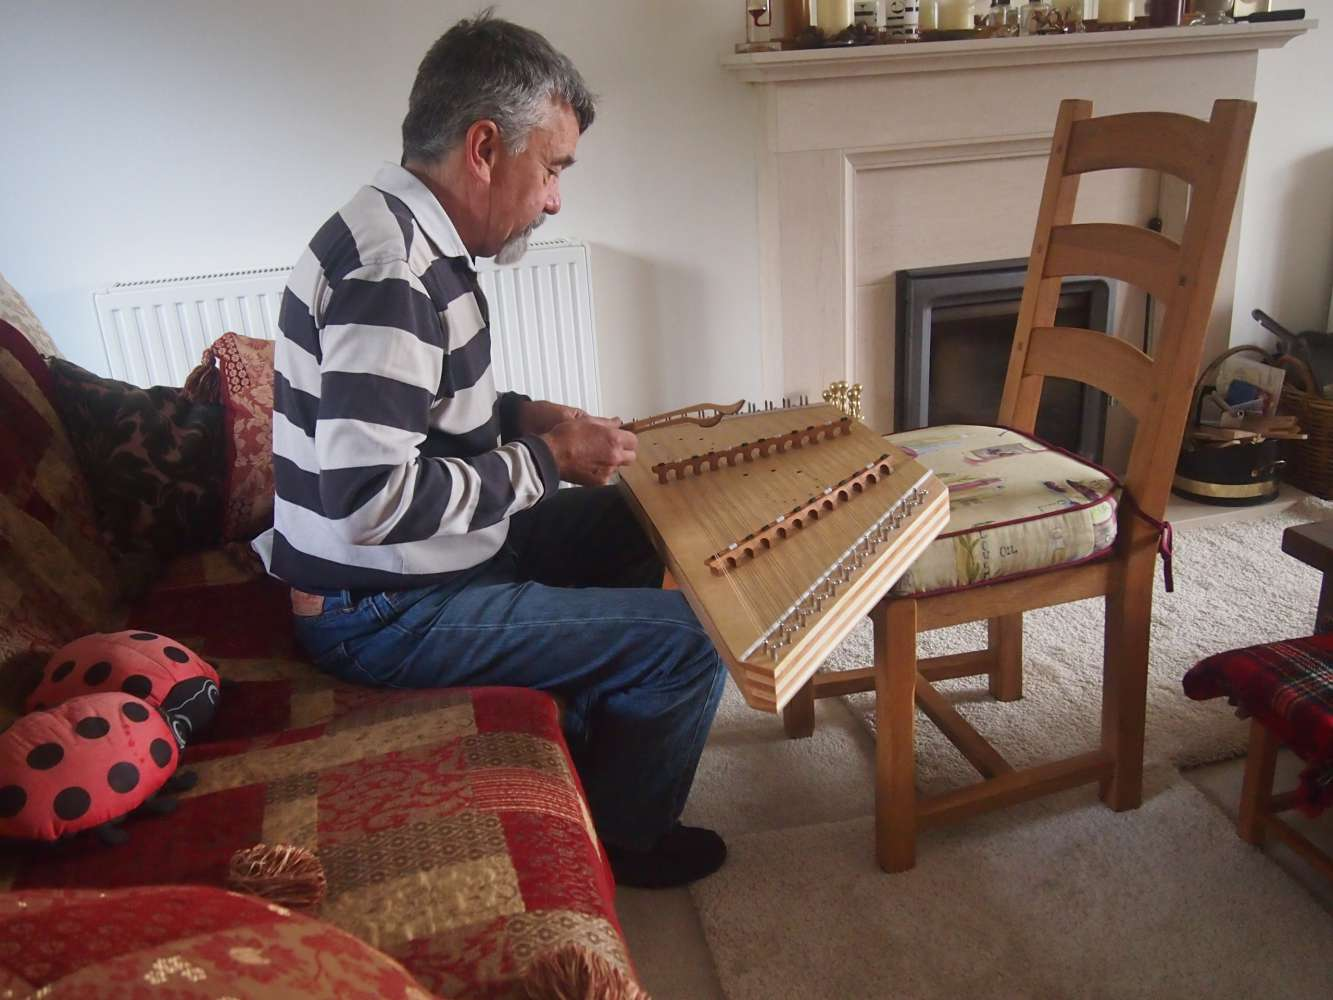 Playing the Dulcimer using a chair